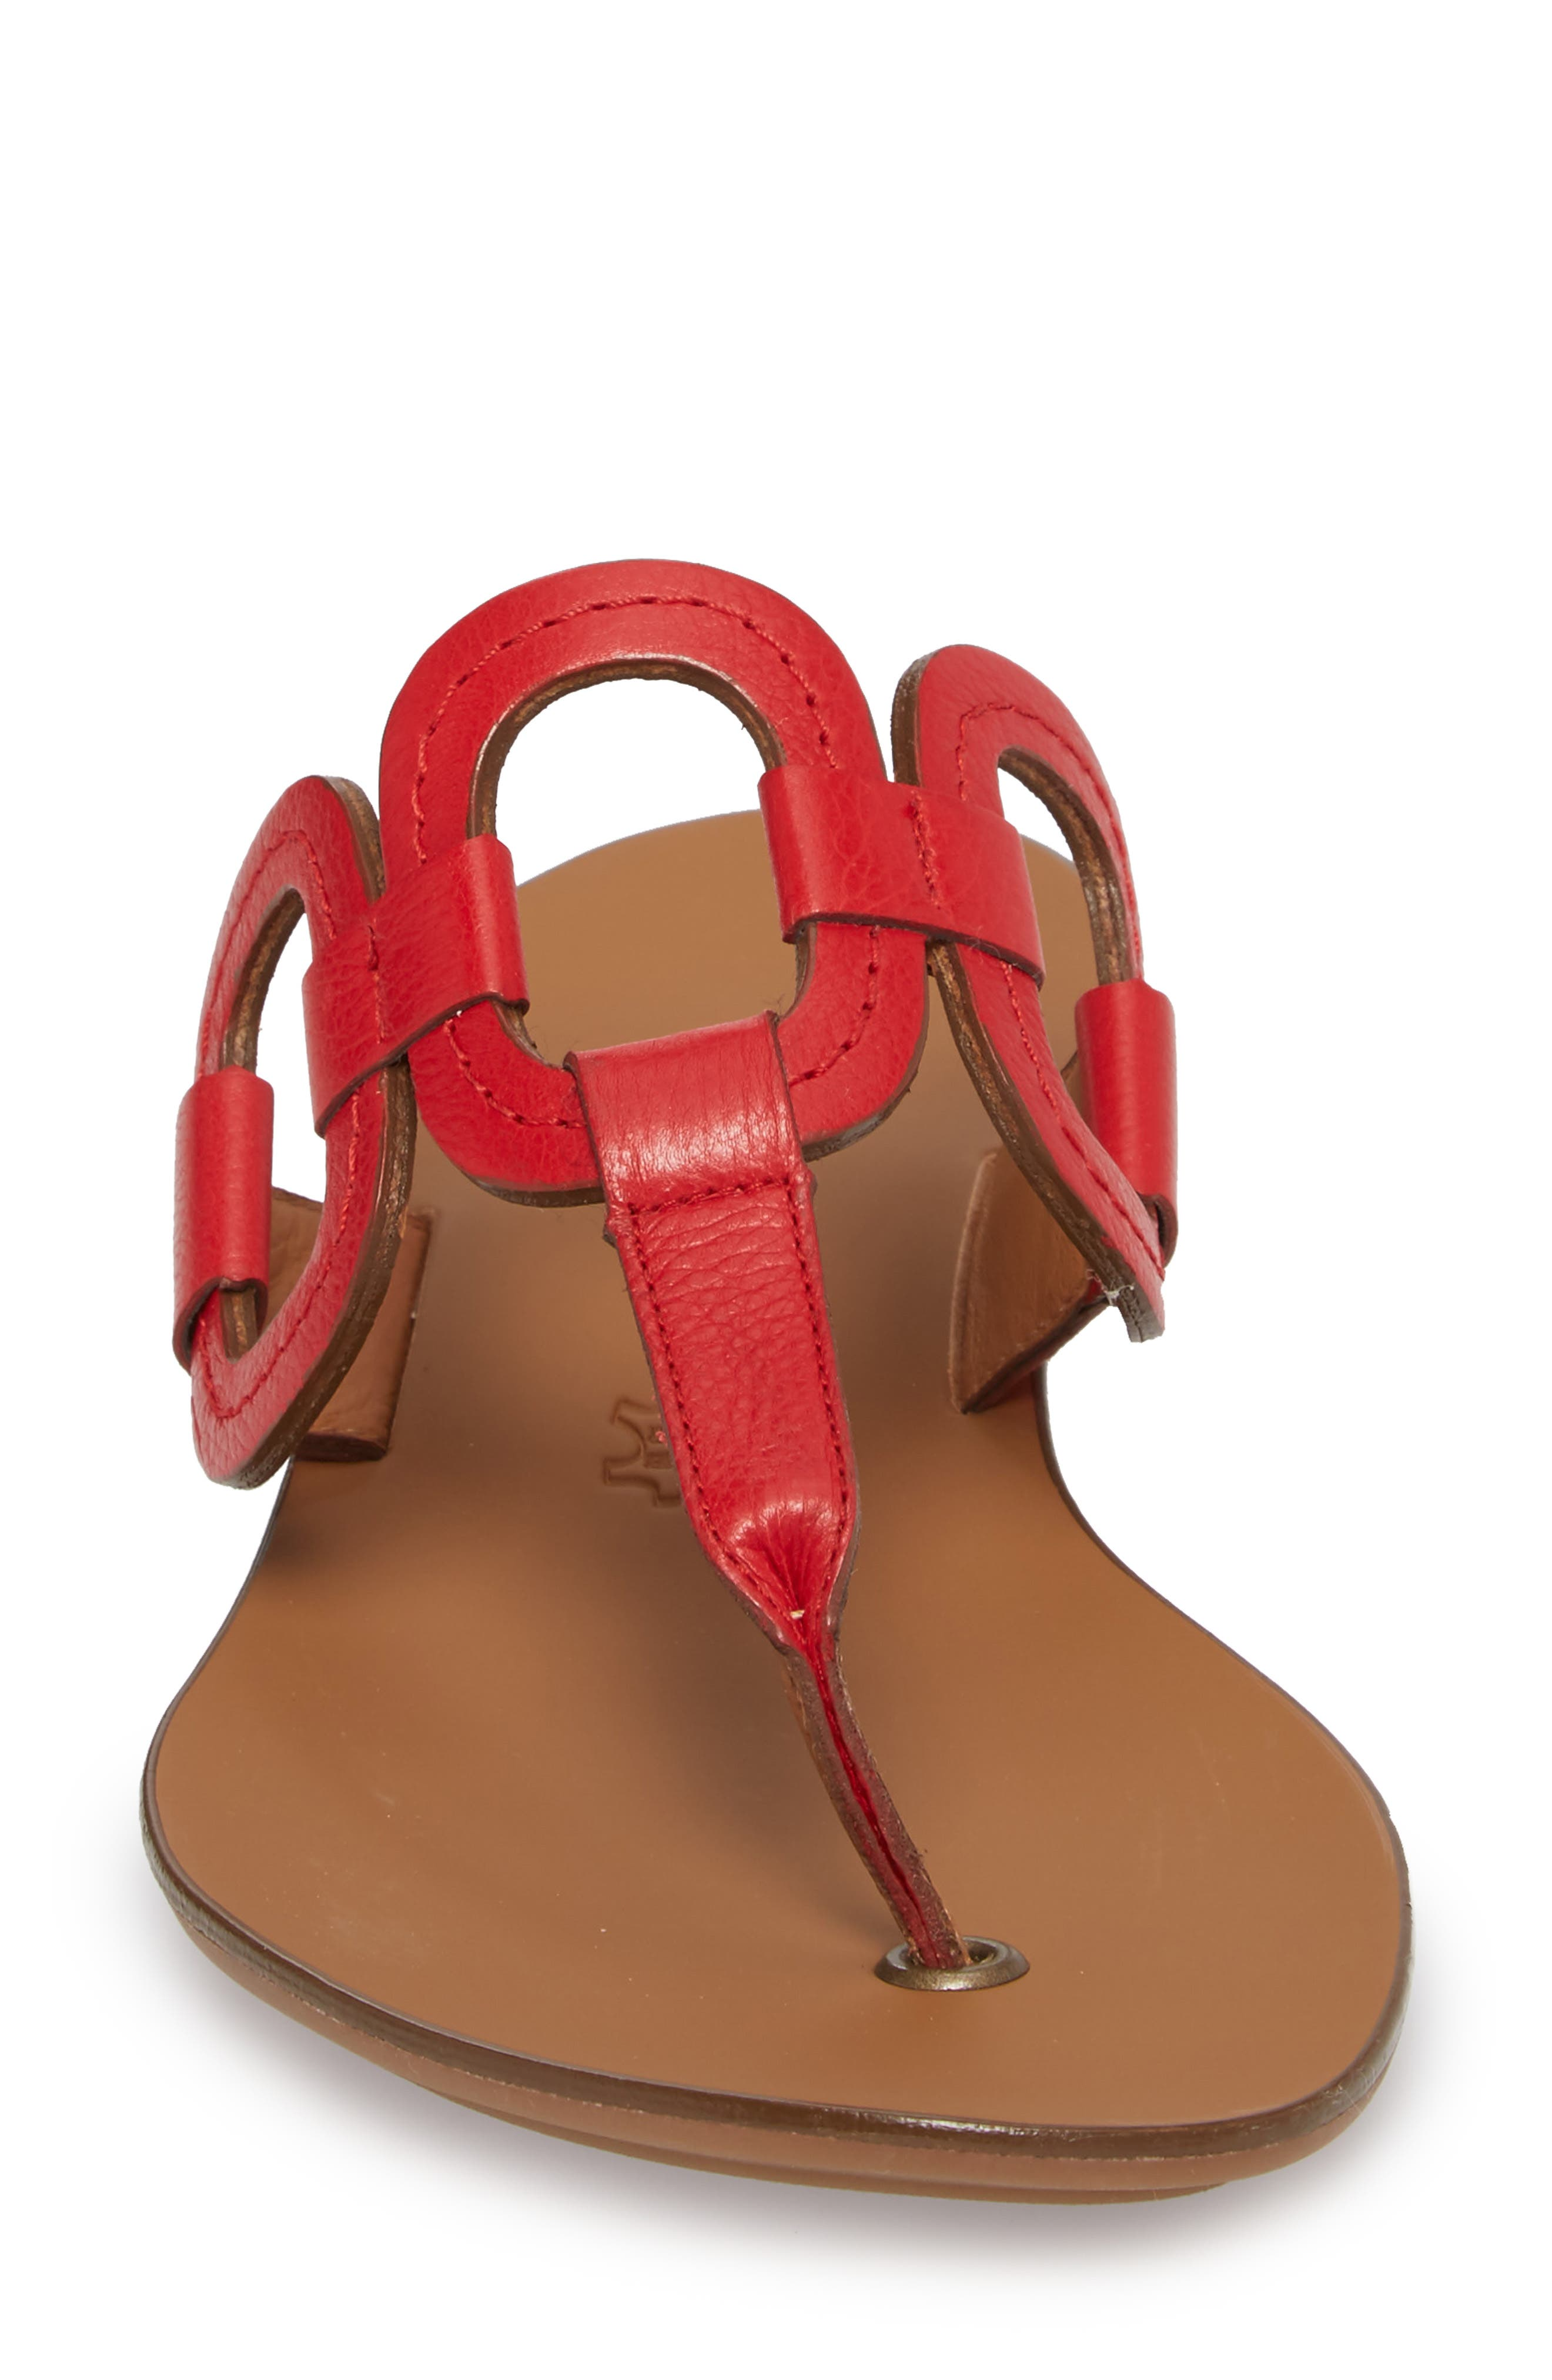 Lanai Flip-Flop,                             Alternate thumbnail 4, color,                             Red Leather